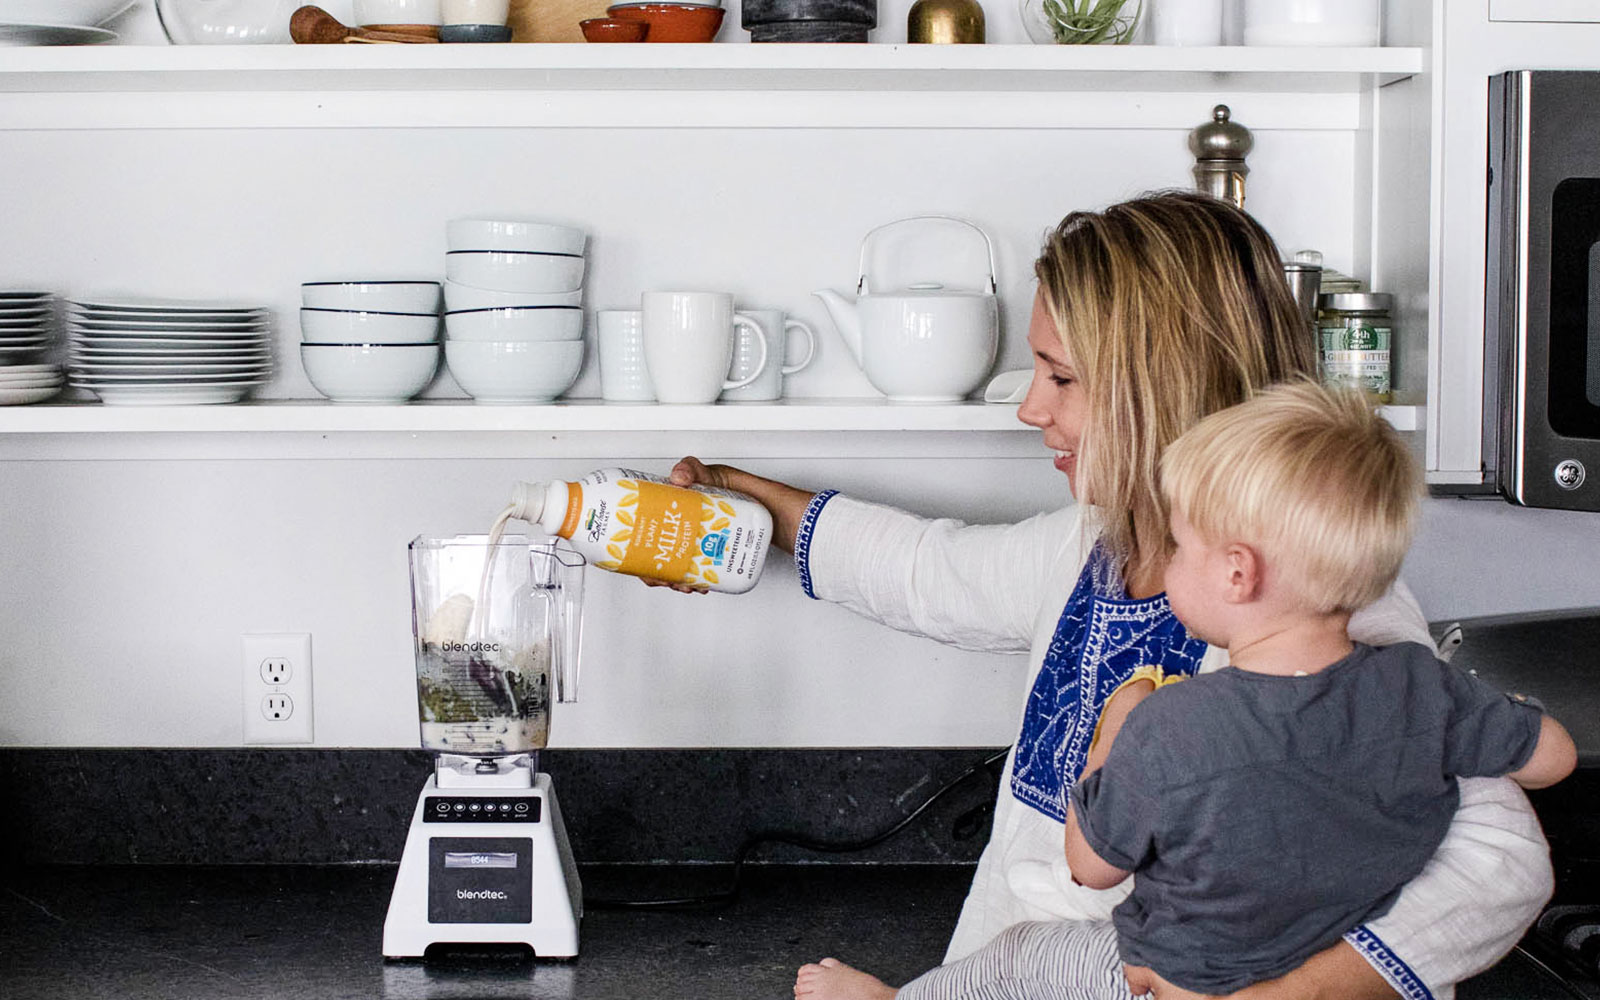 Protein for the Every Day. The Best way to get protein in kids. More on The Fresh Exchange.